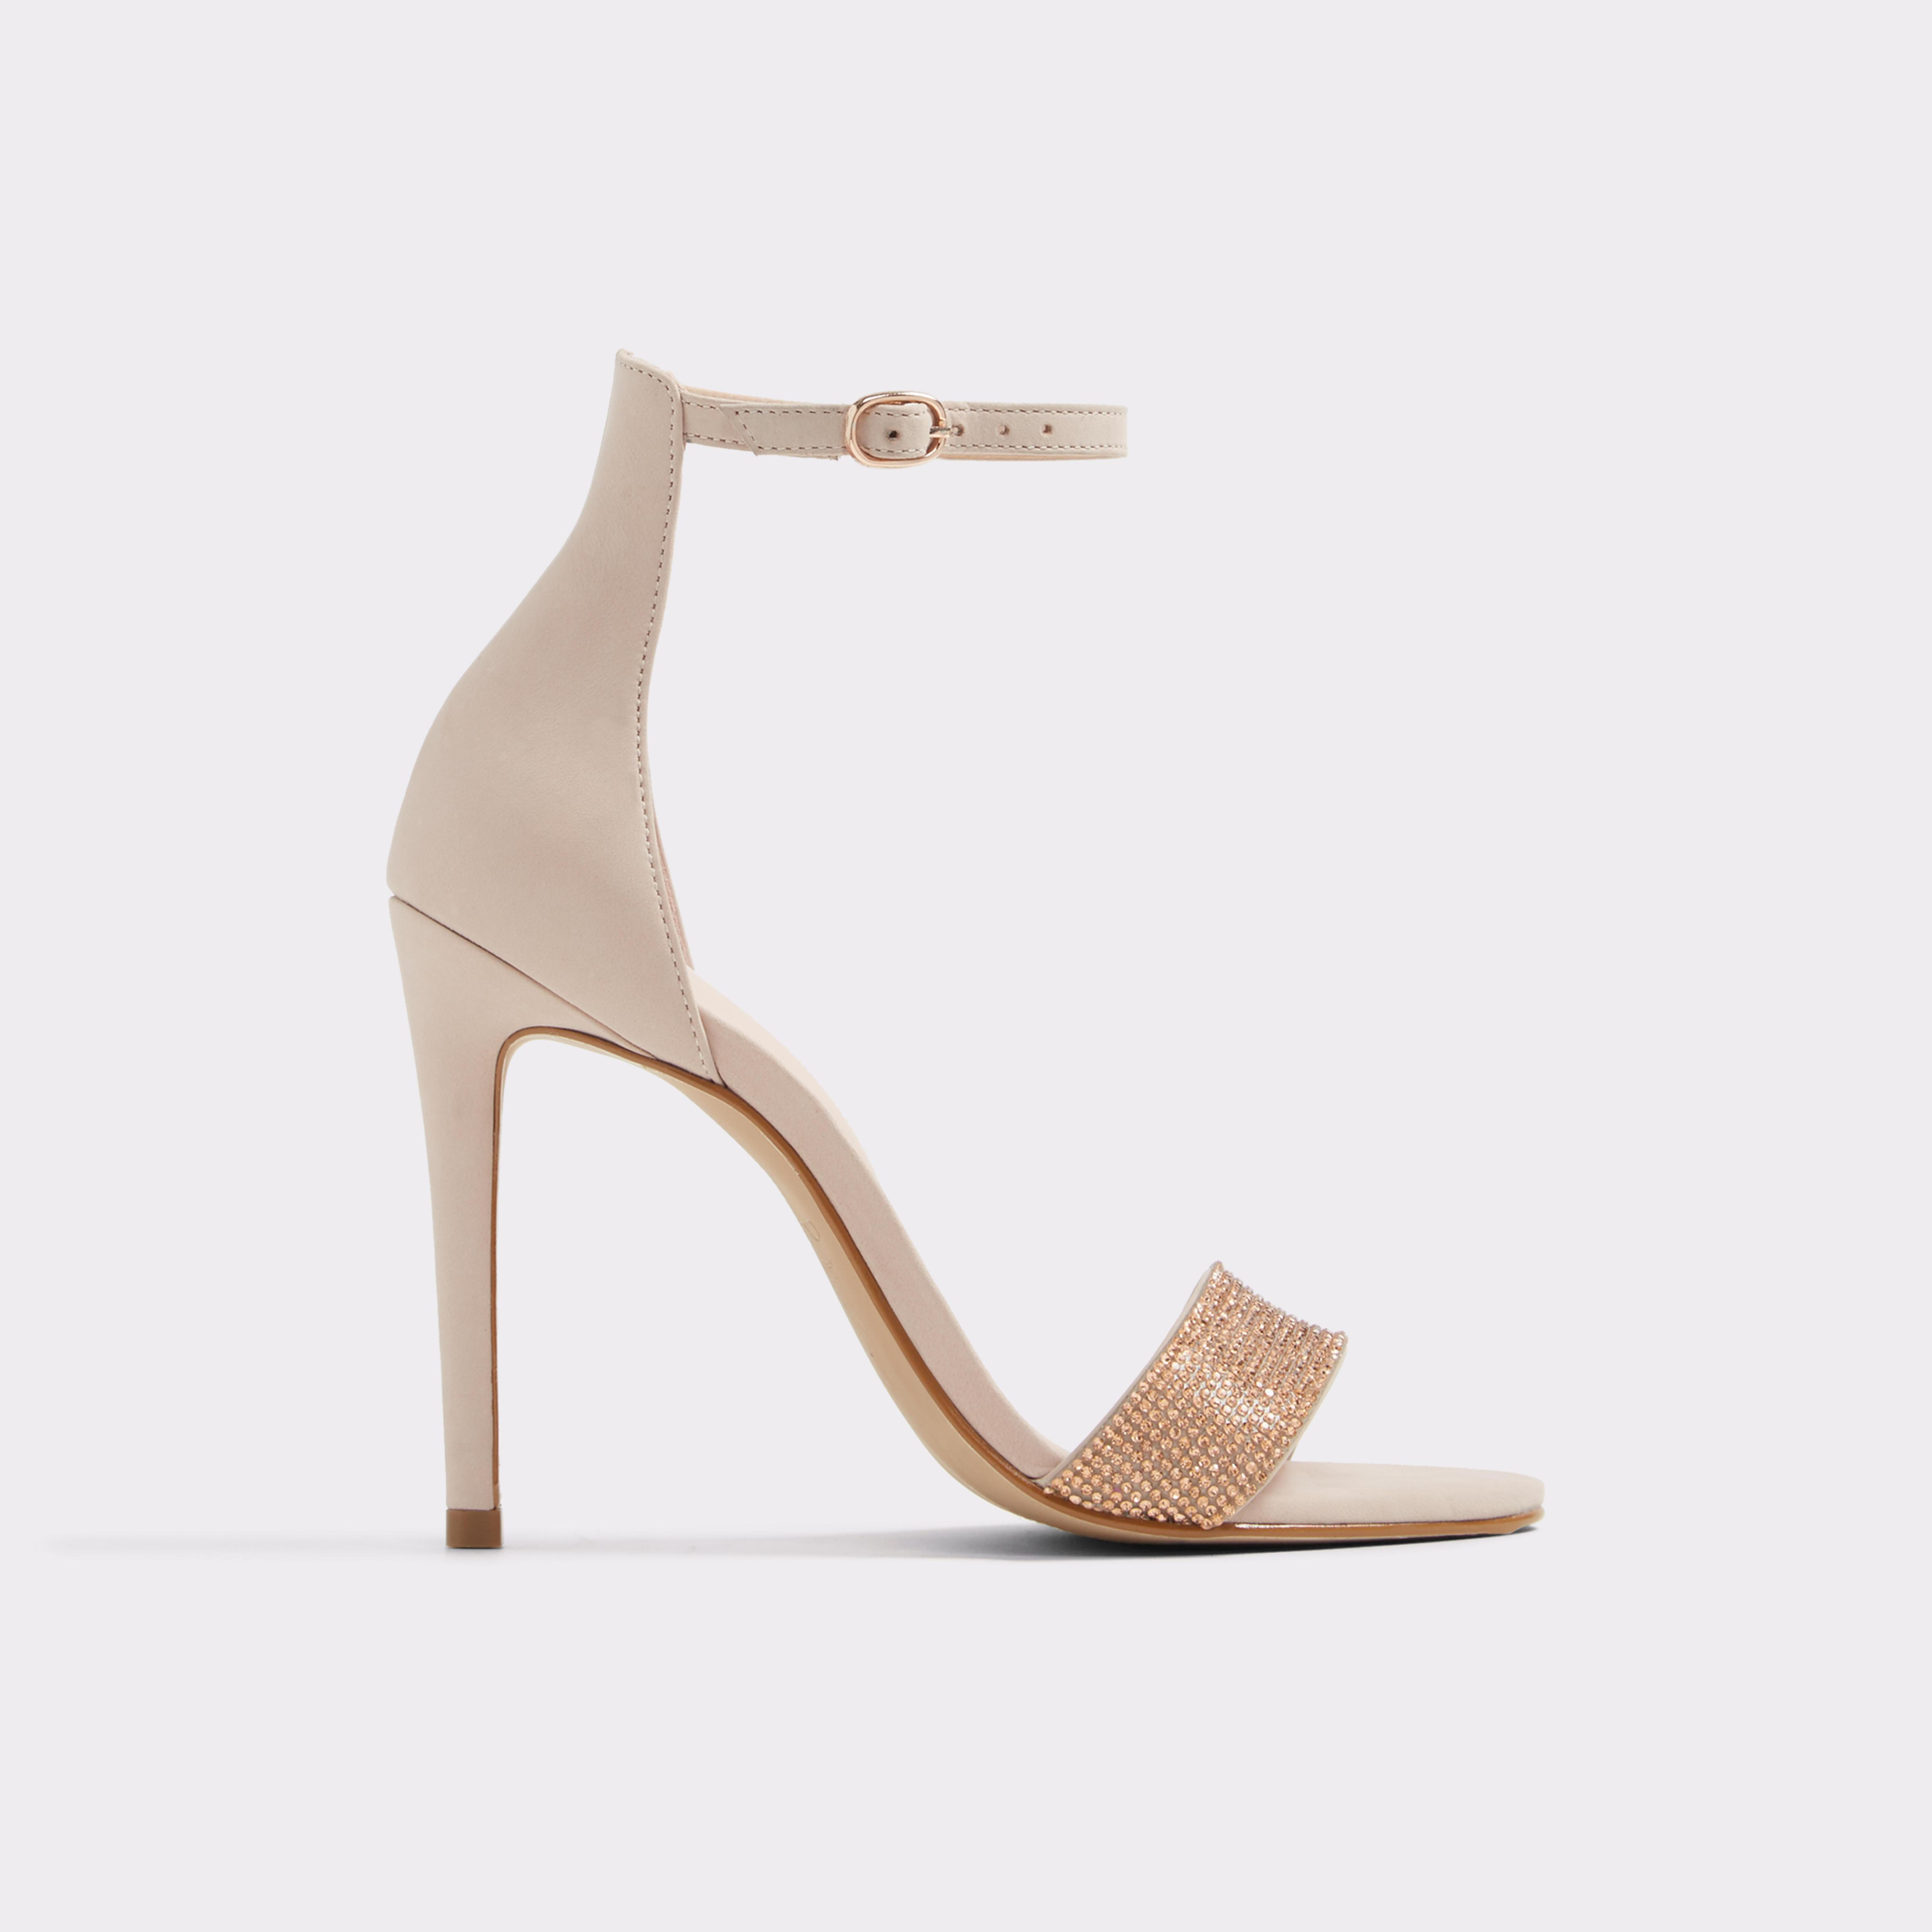 f08f94adaa3 ALDO Kedurith High Heel Sandals in Pink - Lyst